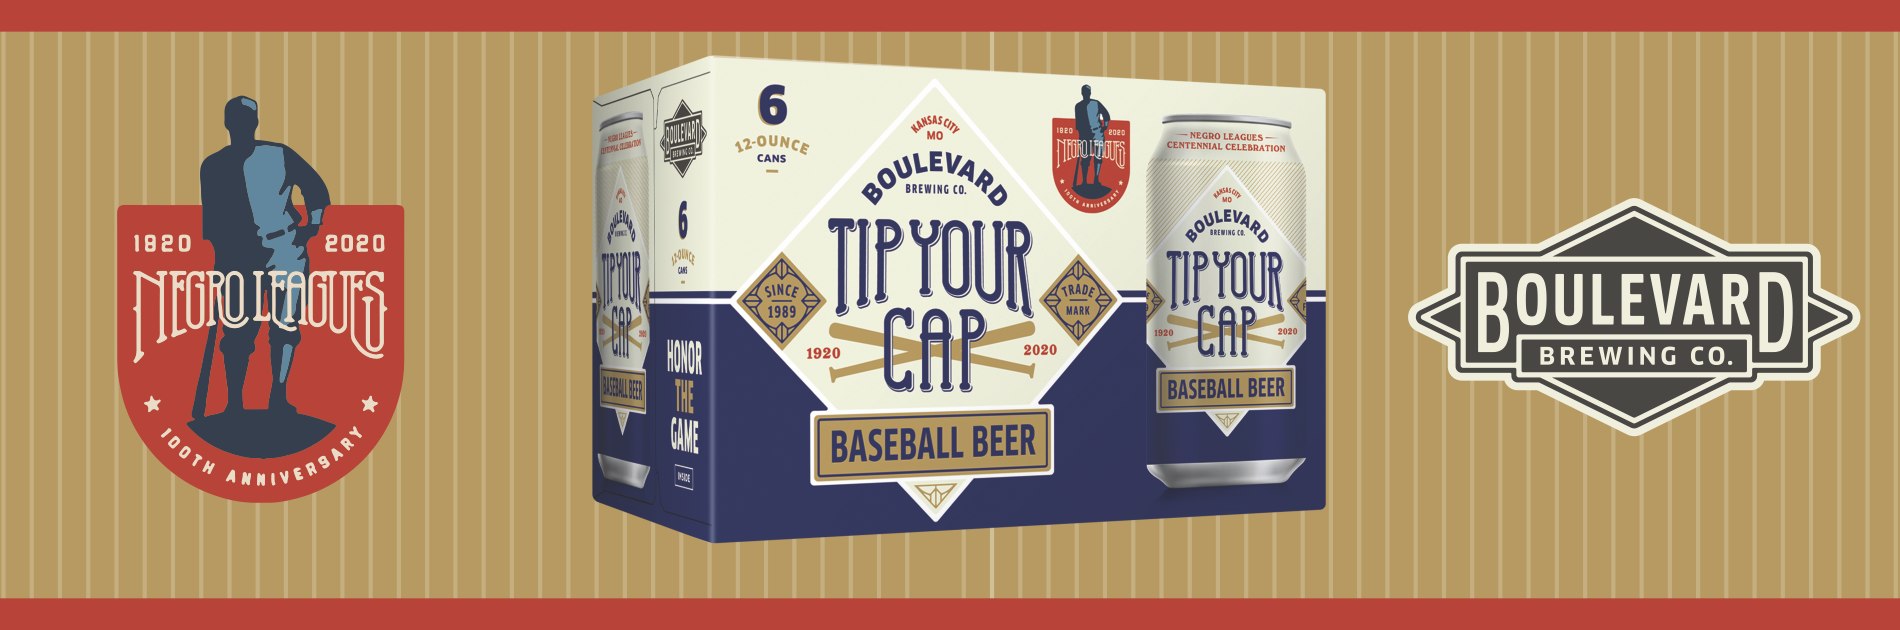 Boulevard Brewing Co. Launches Tip Your Cap Baseball Beer In Partnership With Negro Leagues Baseball Museum